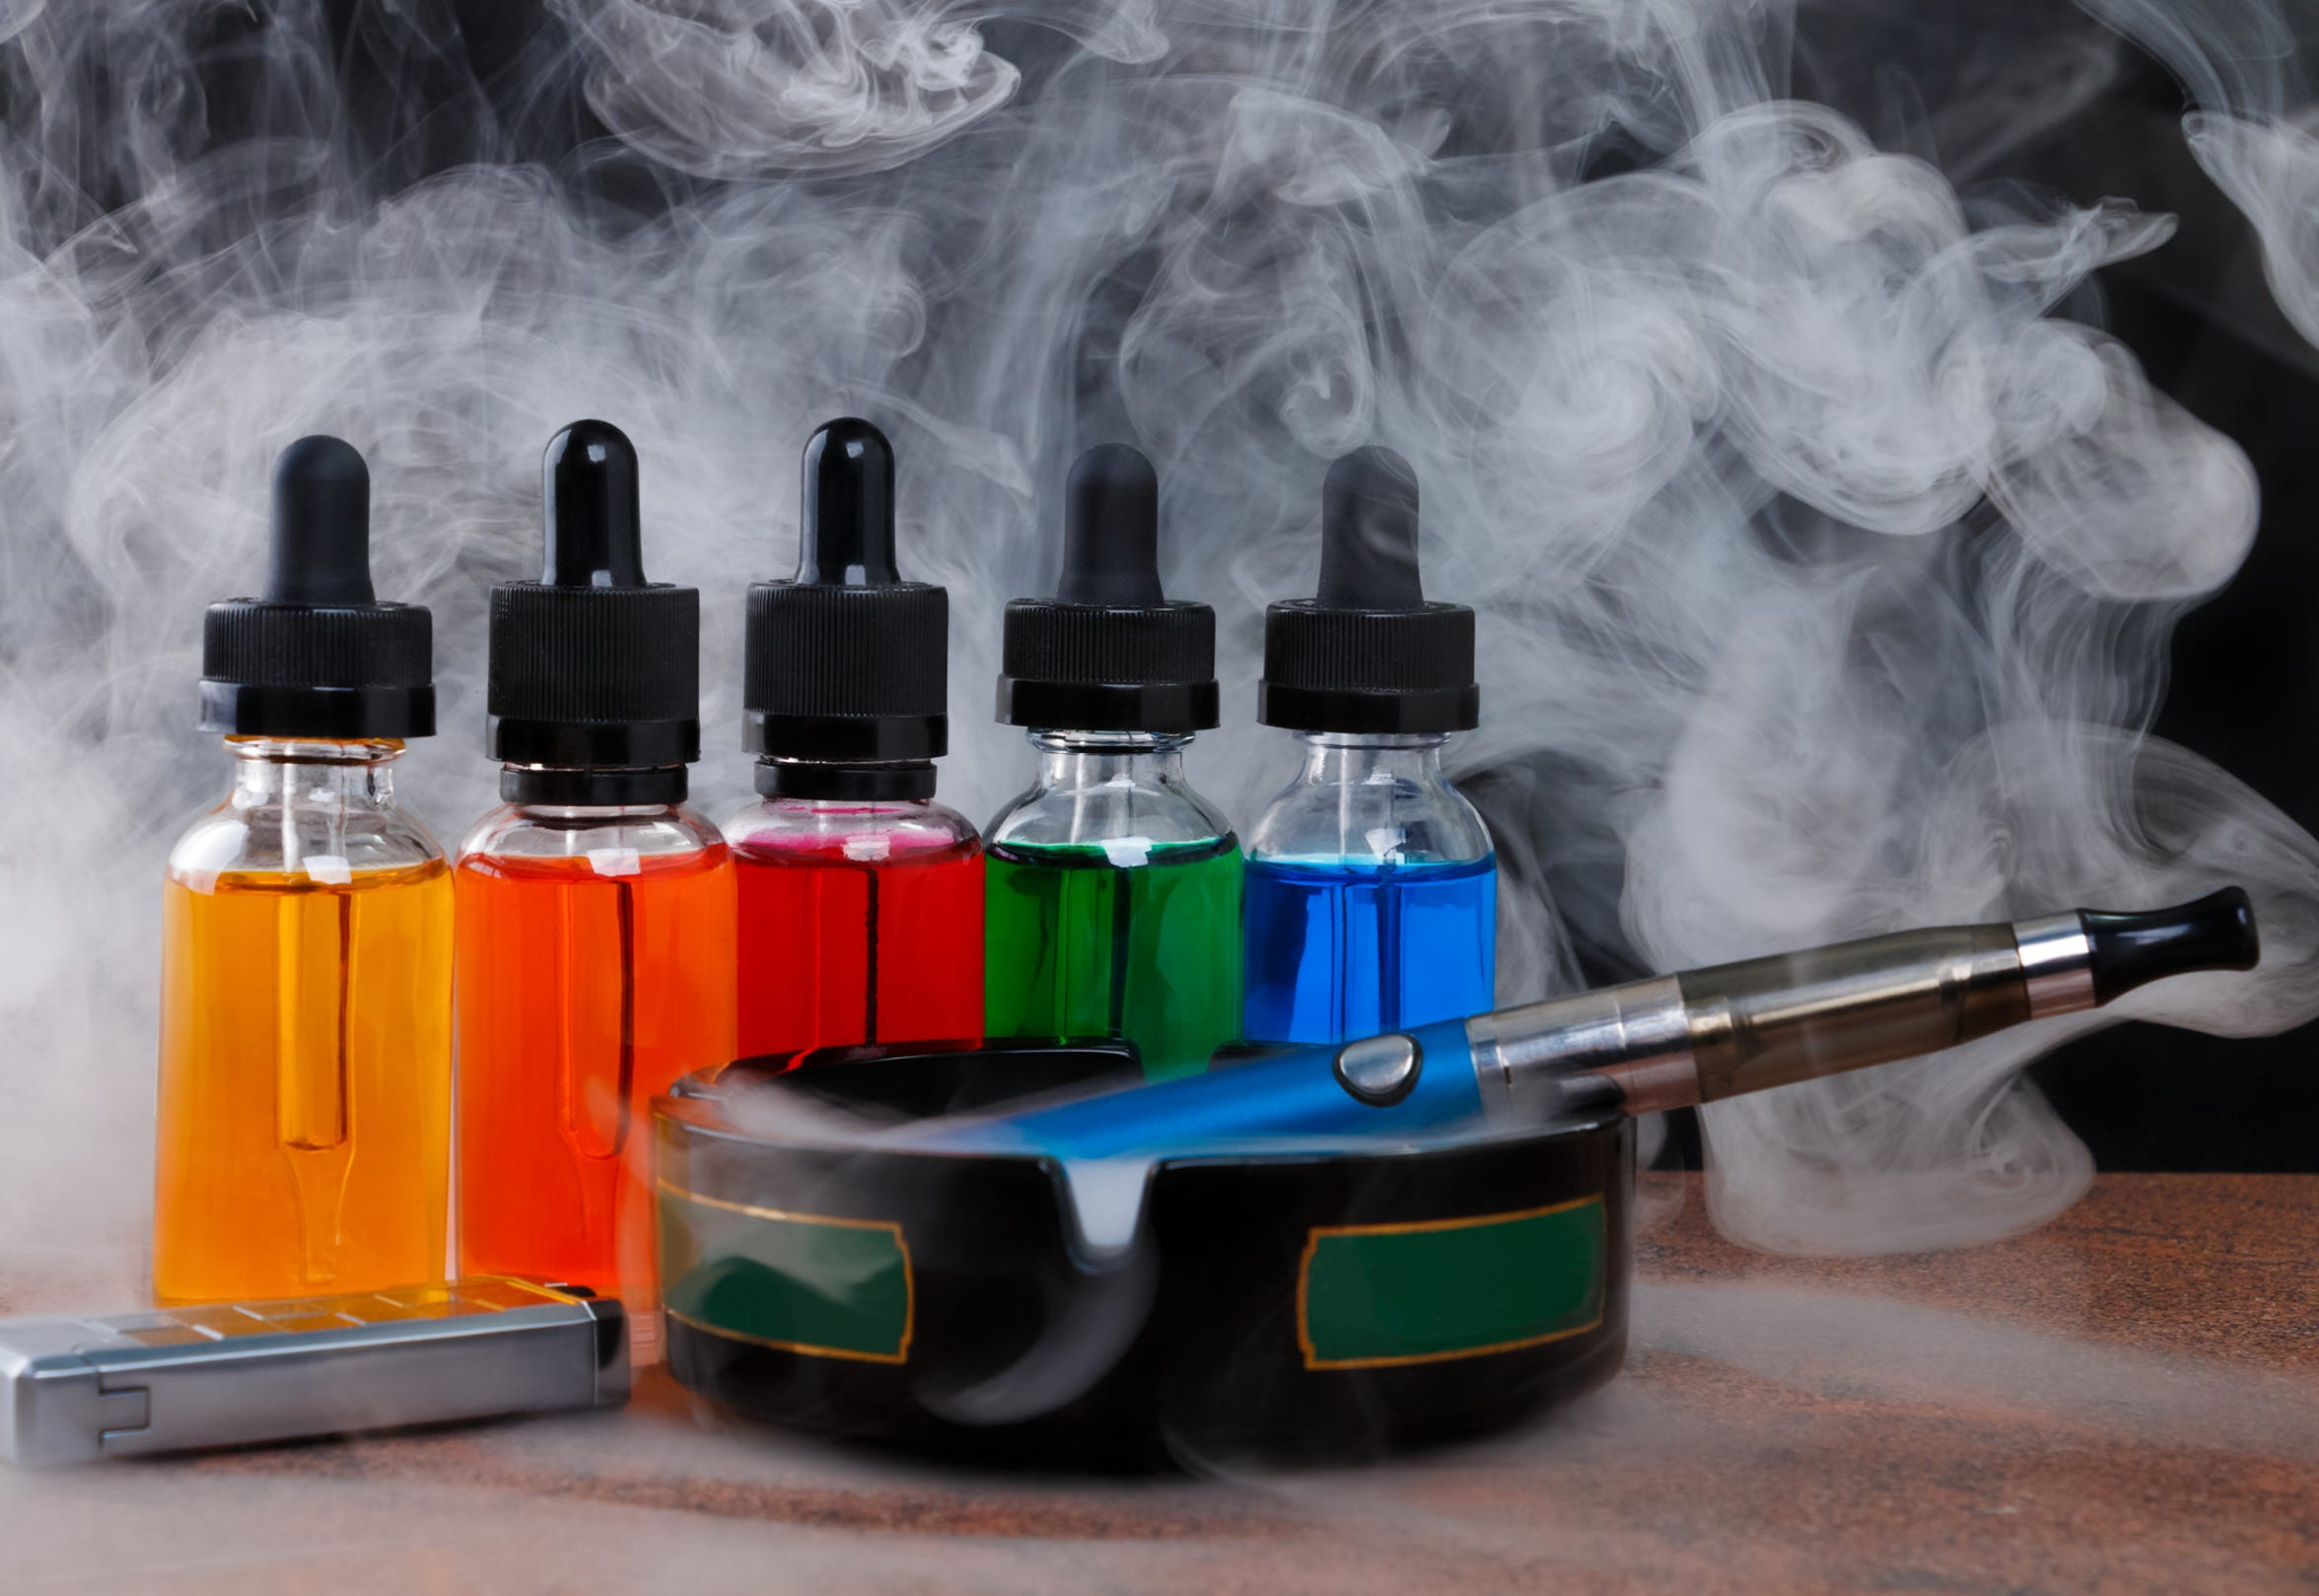 E-cigarettes and their flavored oils may seem less harmful than regular cigarettes, however, oil can be extremely toxic to the lungs.